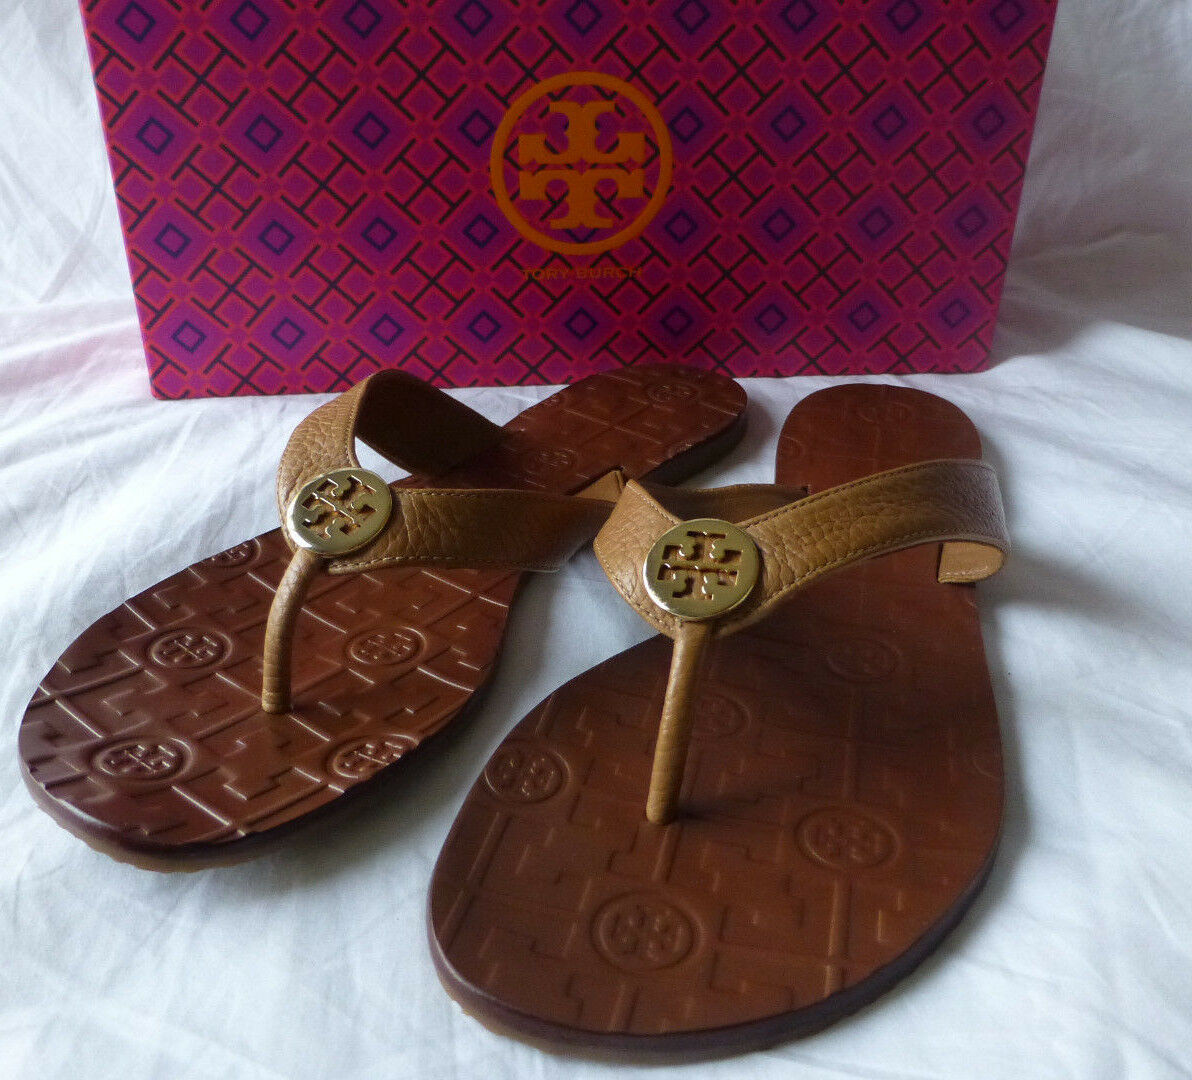 TORY BURCH Thora Royal Tan Gold Logo Tumbled Leather Size 9 New